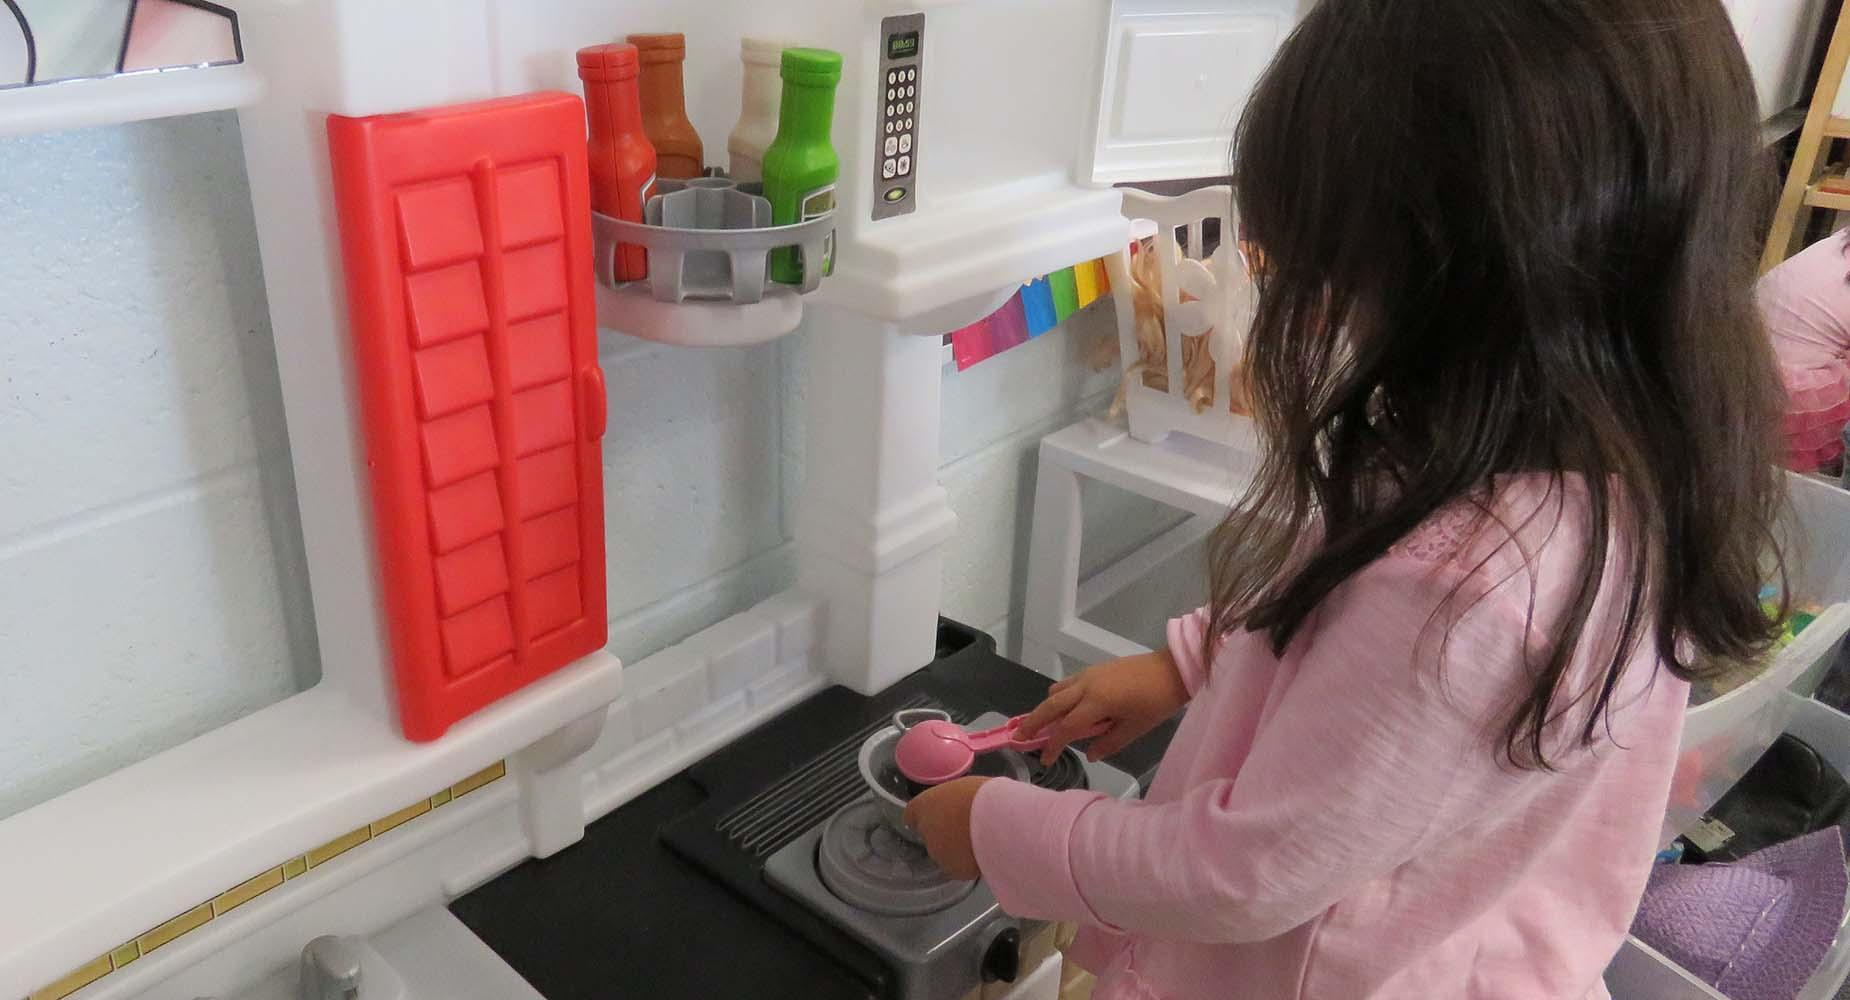 A young girl dressed in pink pretends to cook in a play kitchen.